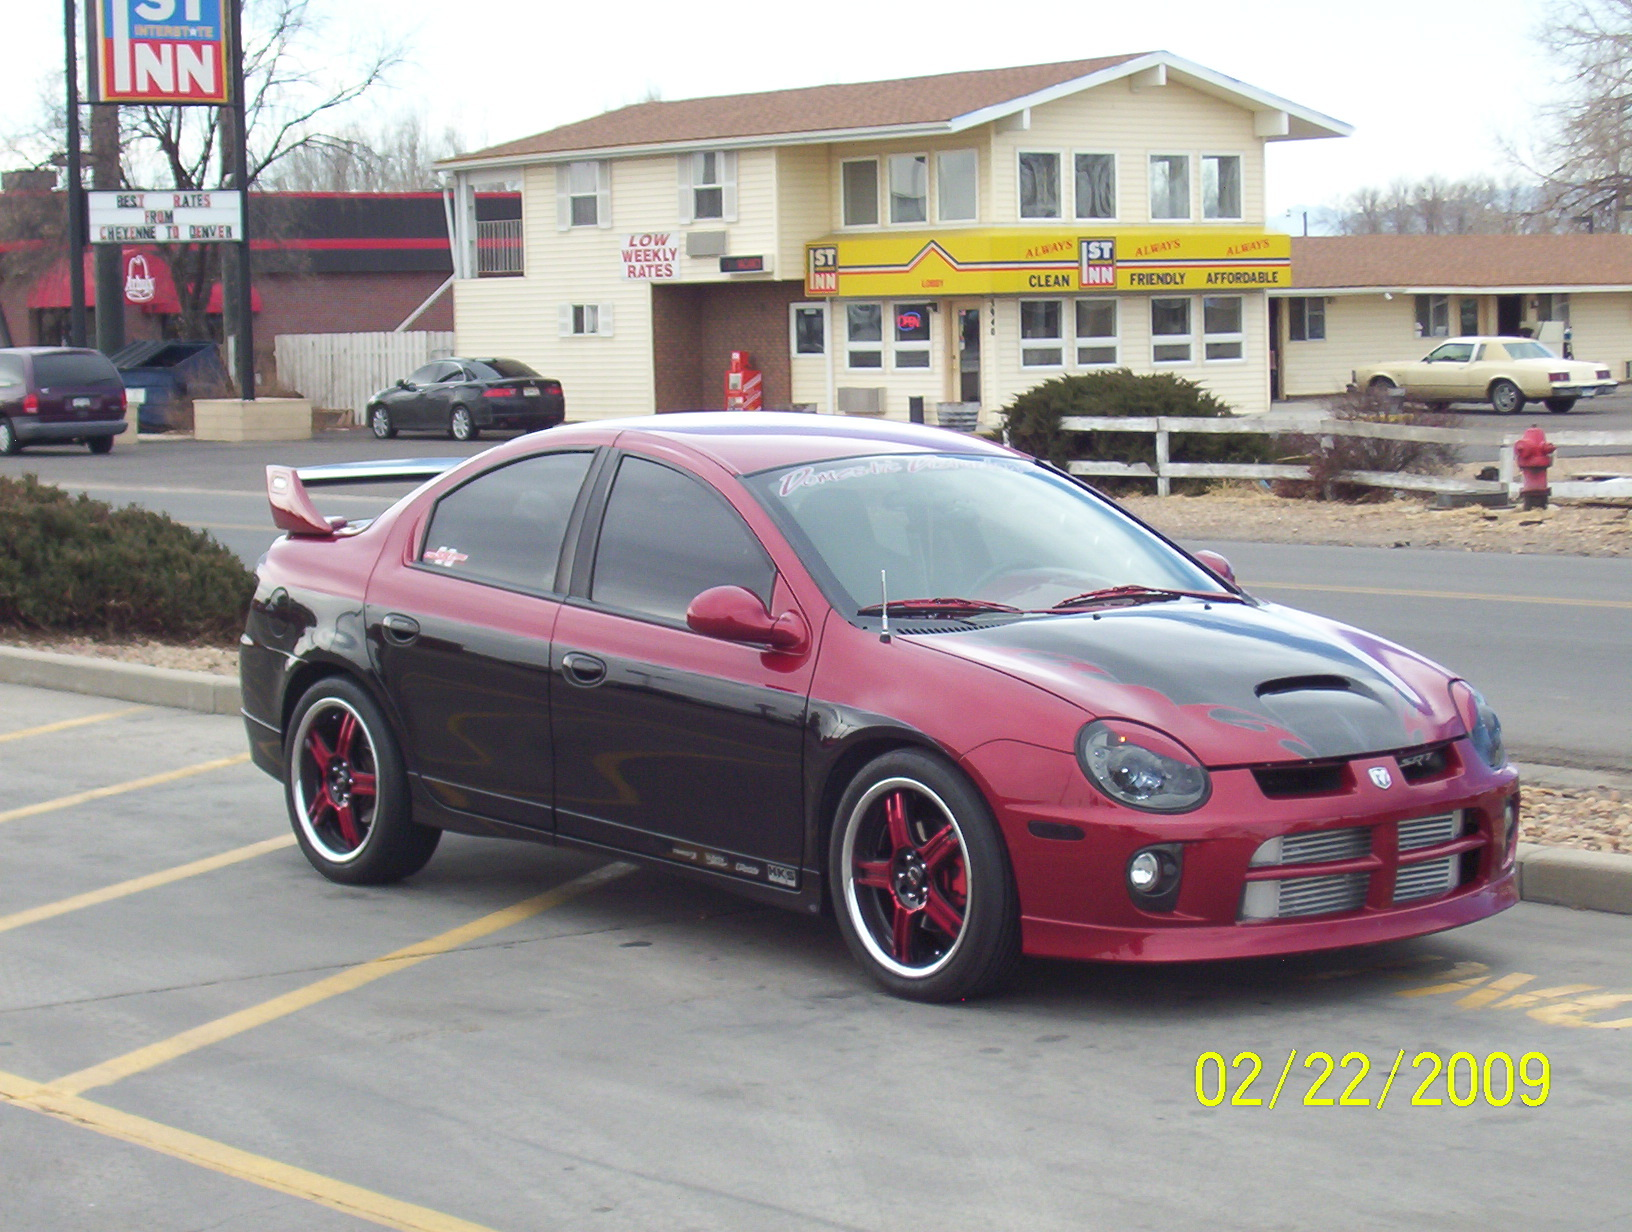 SHOWTYMESRT4's 2004 Dodge Neon